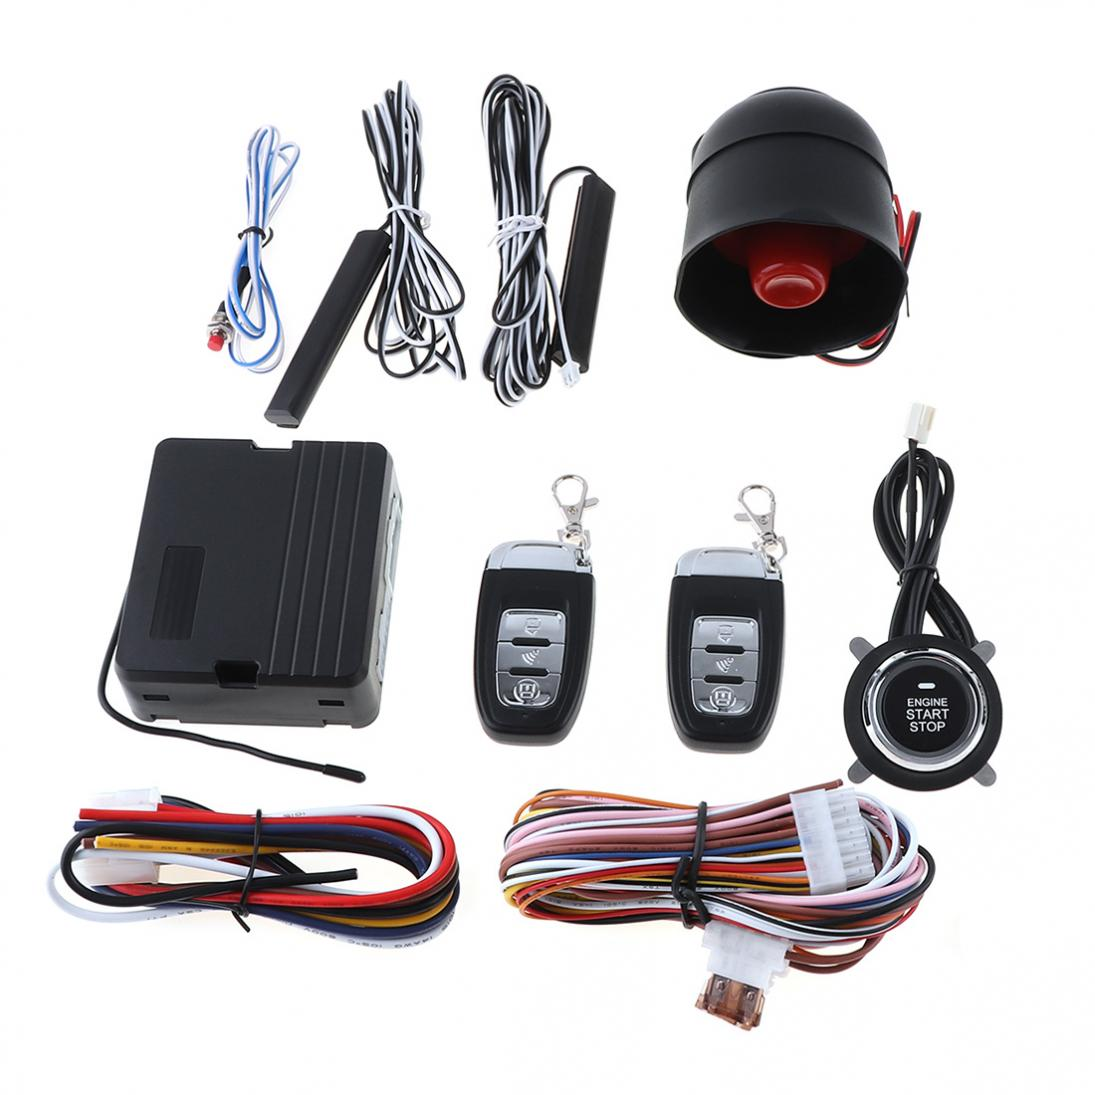 PKE Auto Car Alarm Start Stop Engine System RFID Central Lock Keyless Entry system Starter Anti-theft Engine Start Stop button